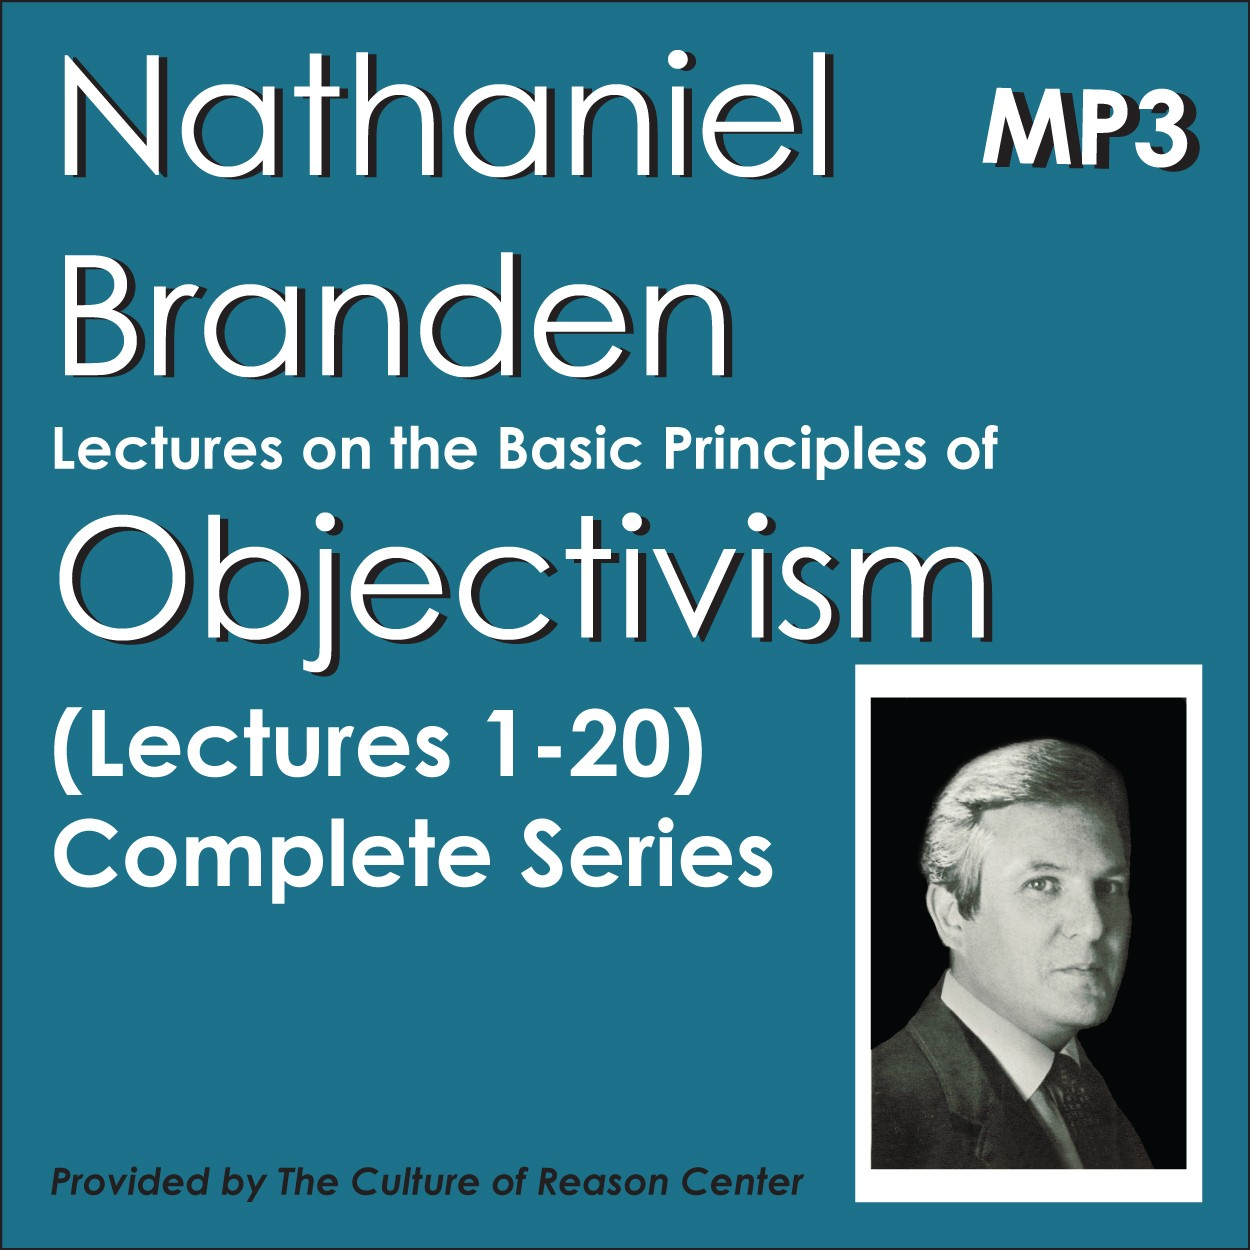 The Basic Principles of Objectivism